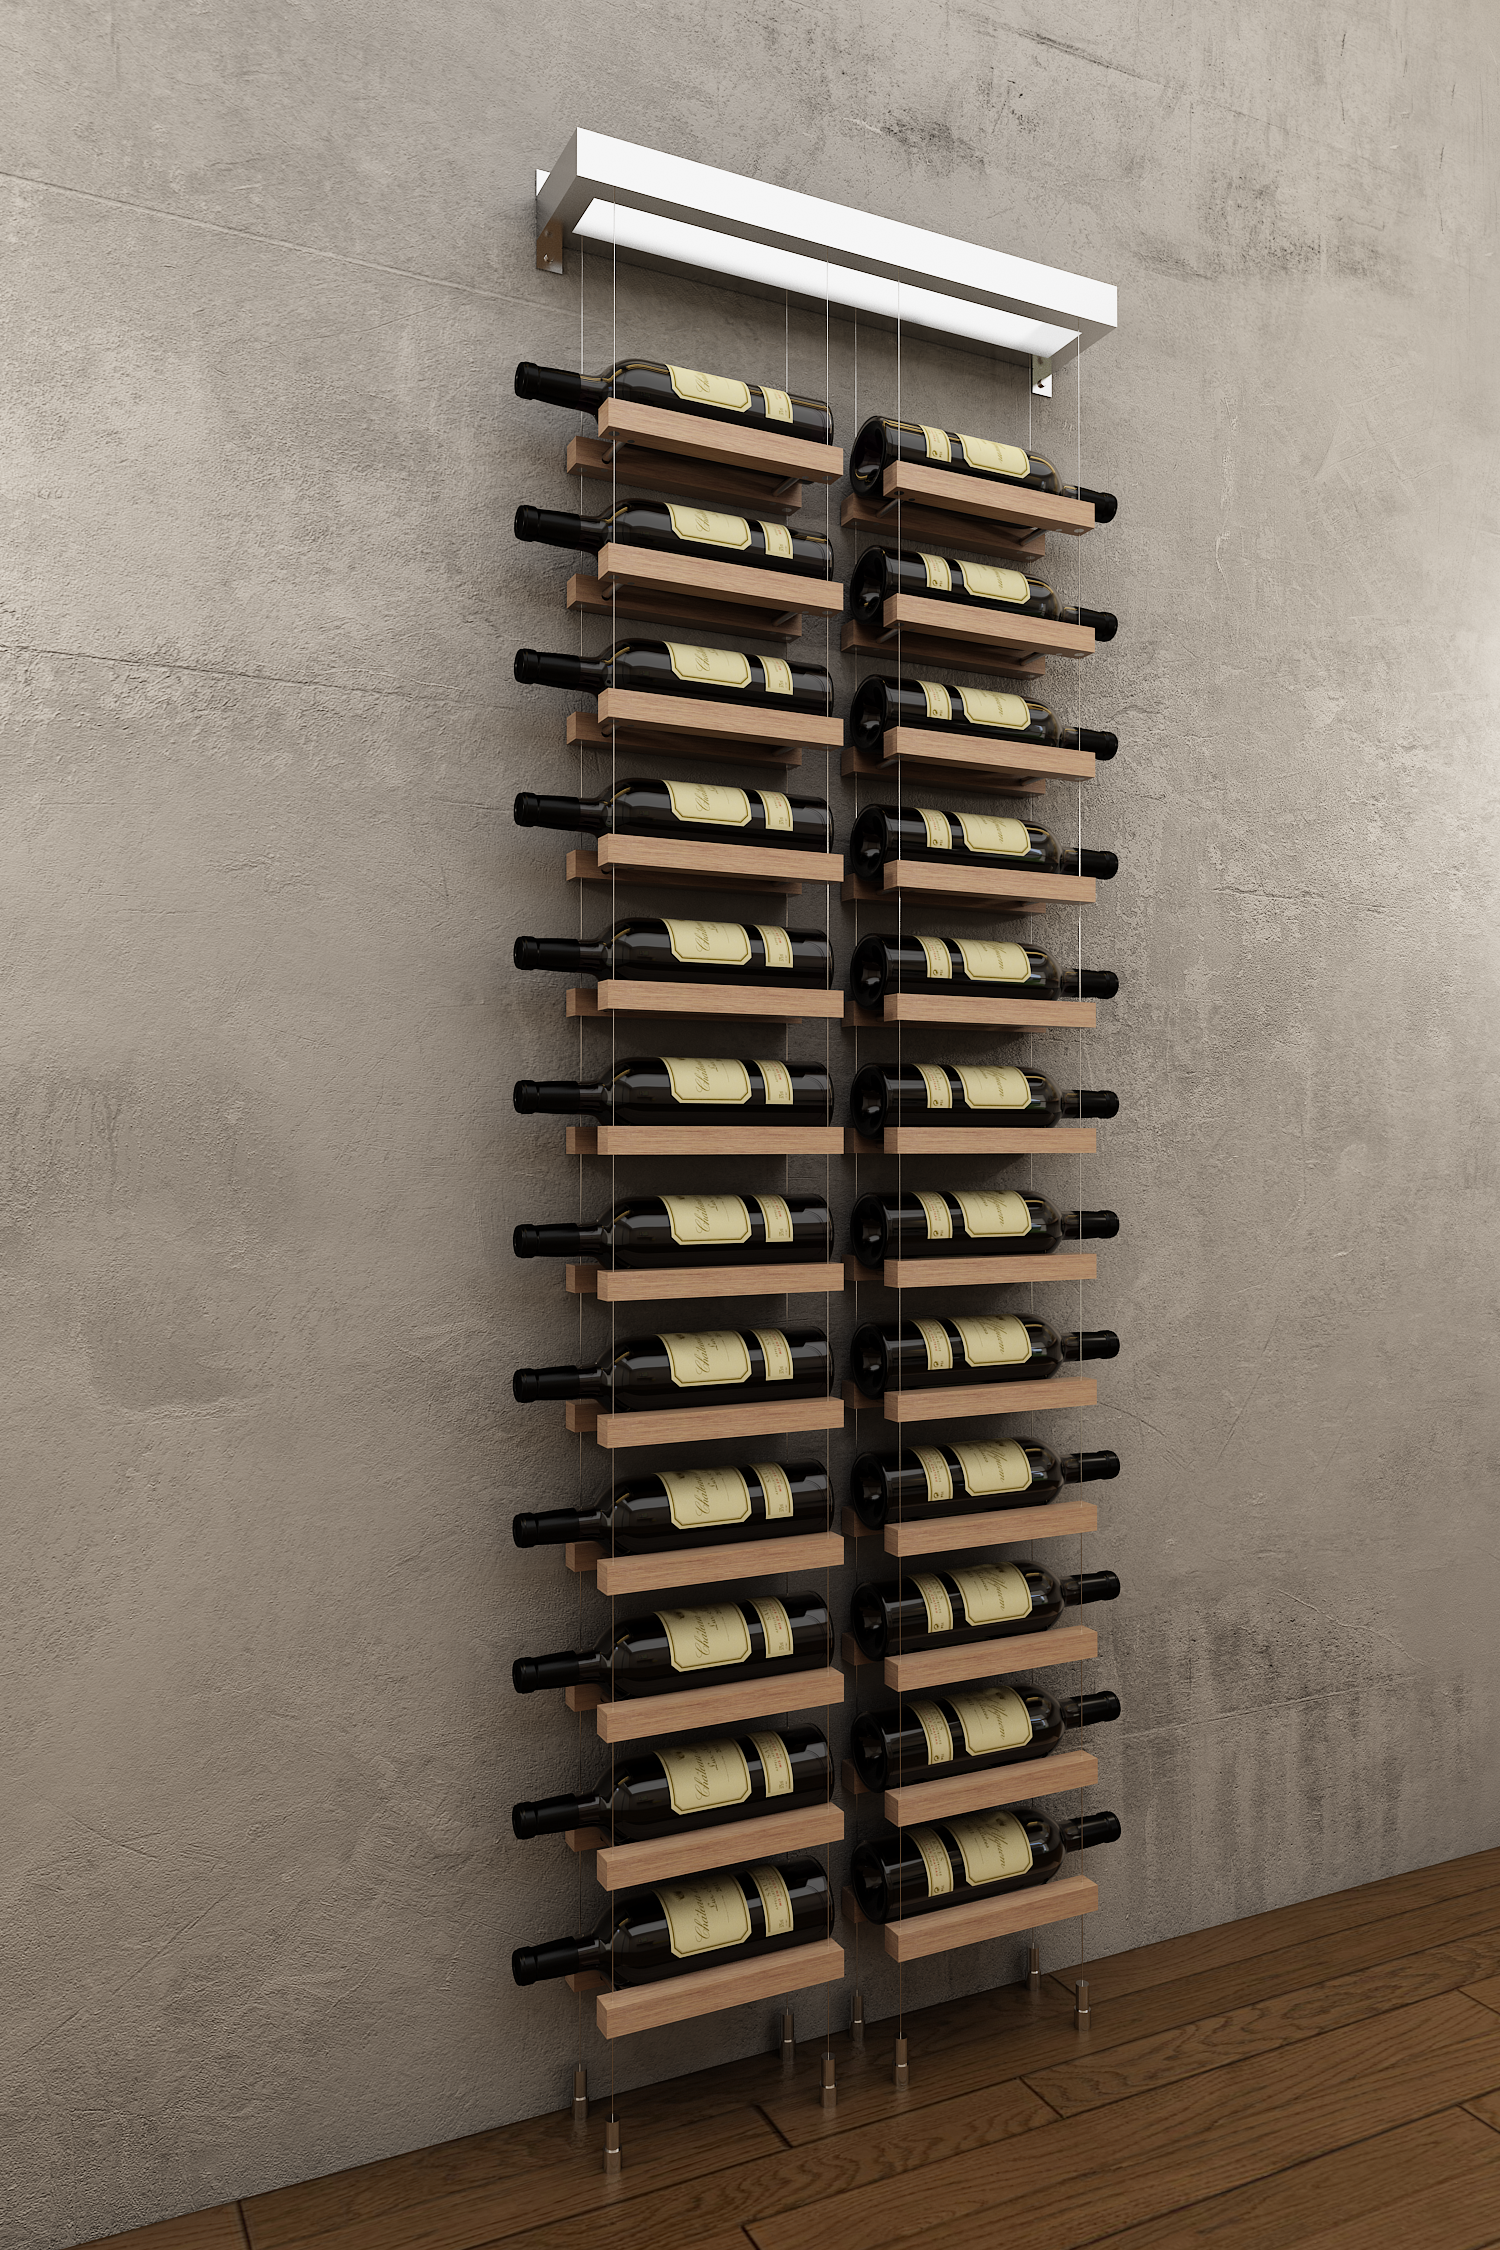 Wm24 Modern Wine Rack Wall Mounted Wine Rack Wall Hanging Wine Rack